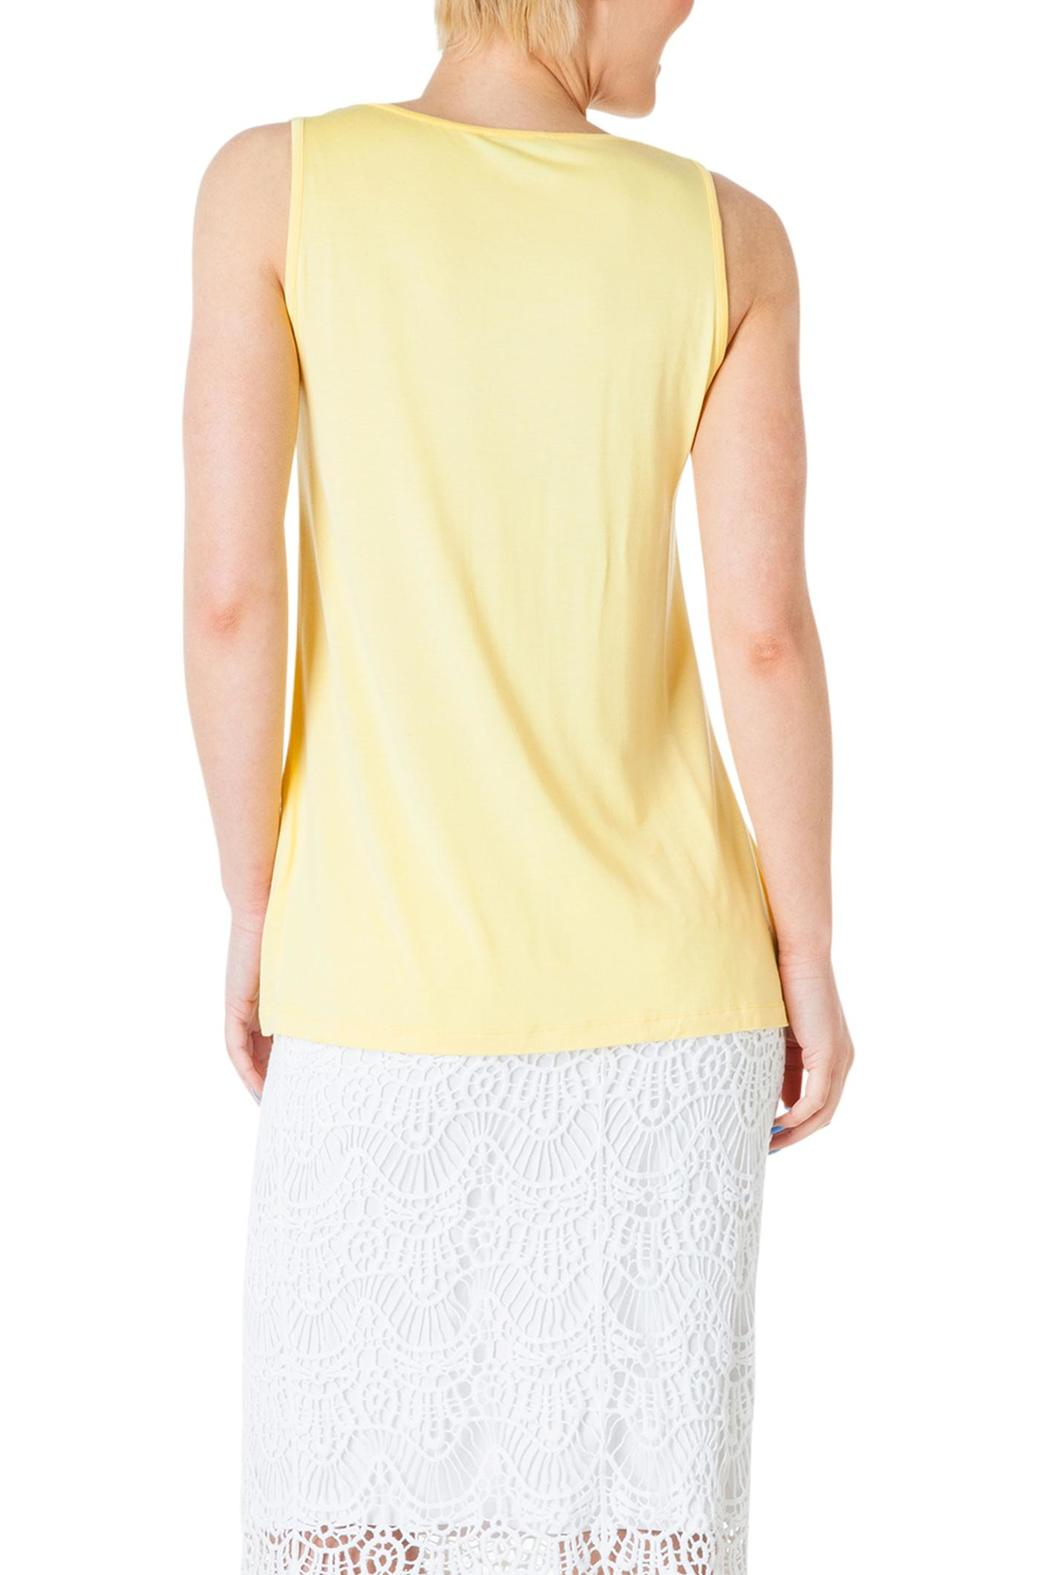 Mellow yellow clothing store